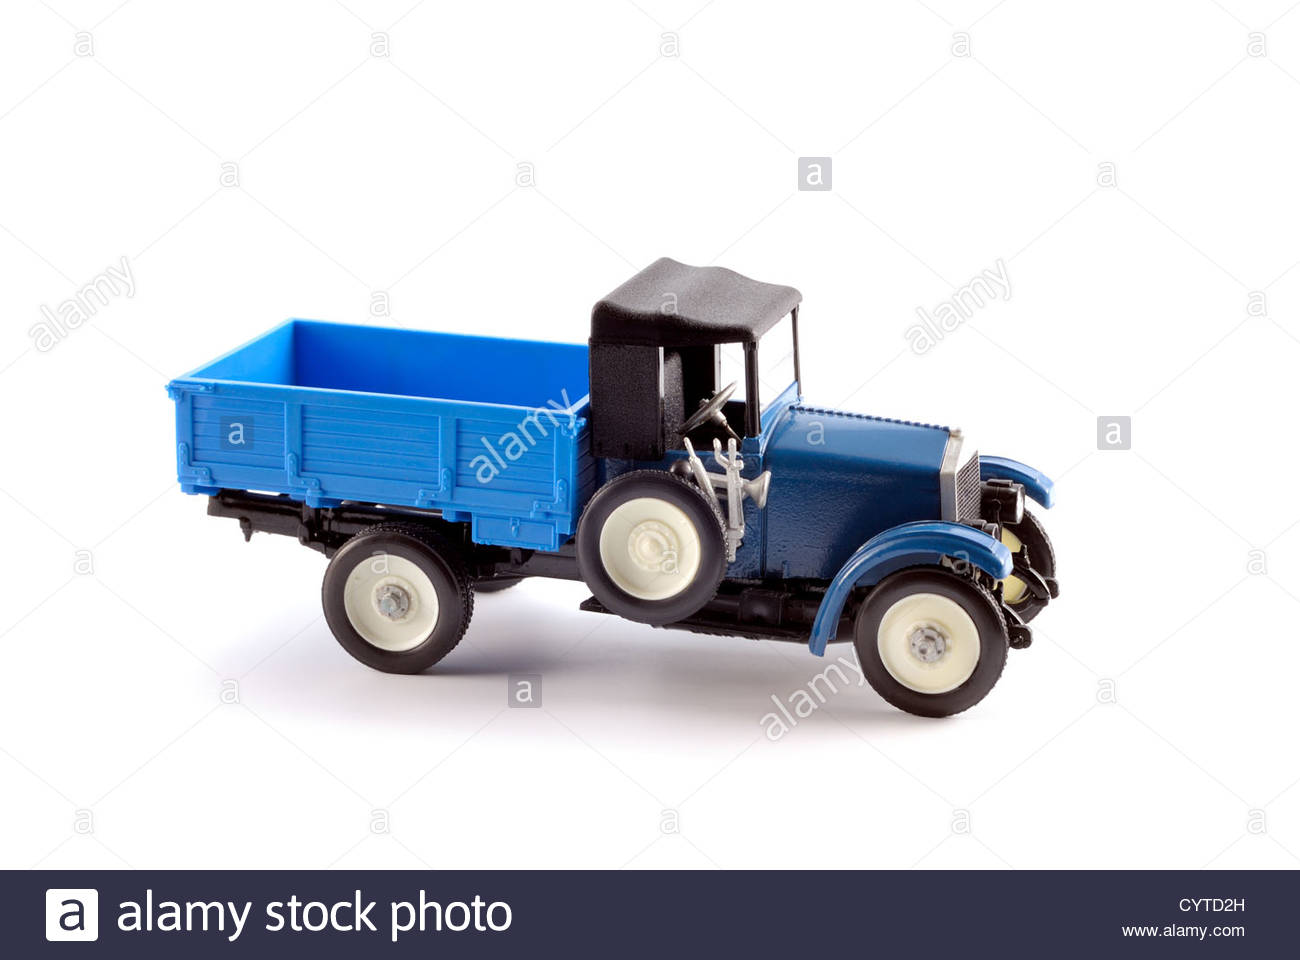 Collection scale model of the truck on a light background - Stock Image